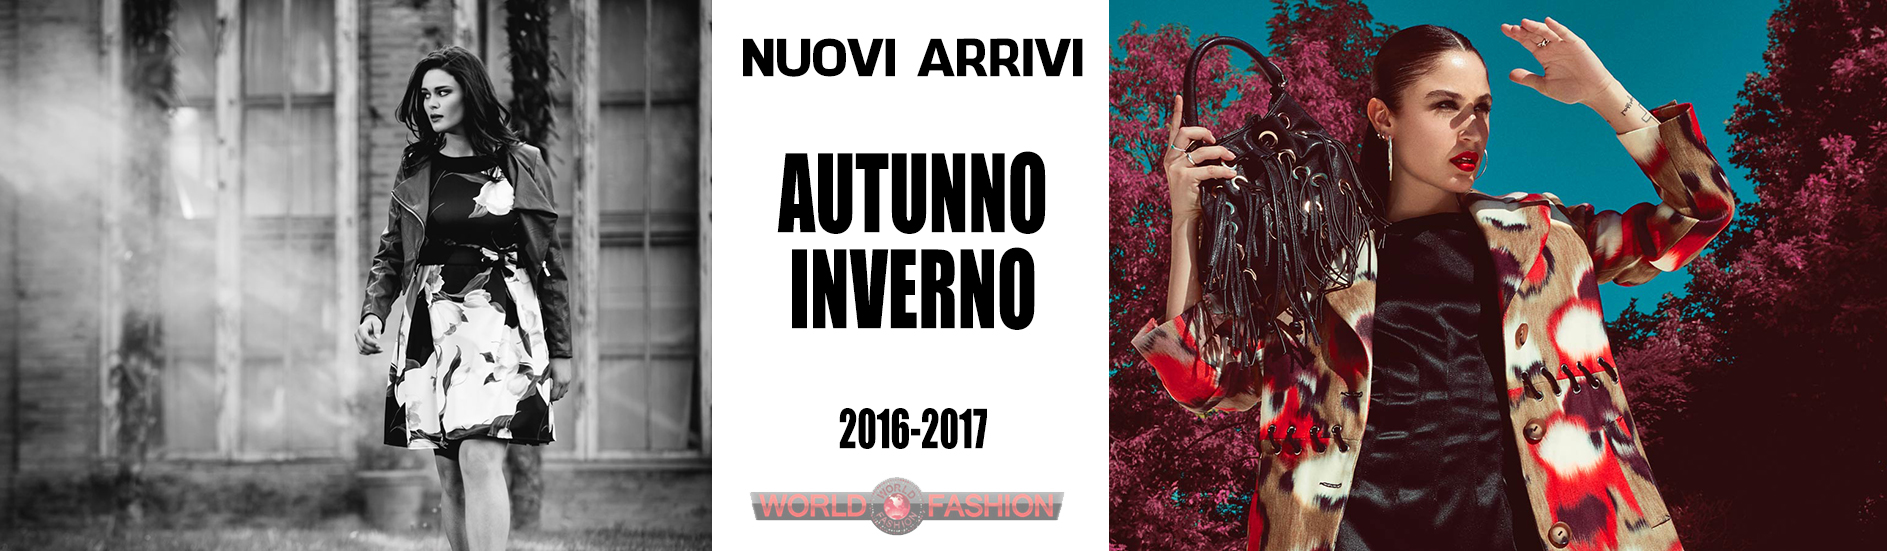 world-fashion-autunno-inverno-2016-2017-1